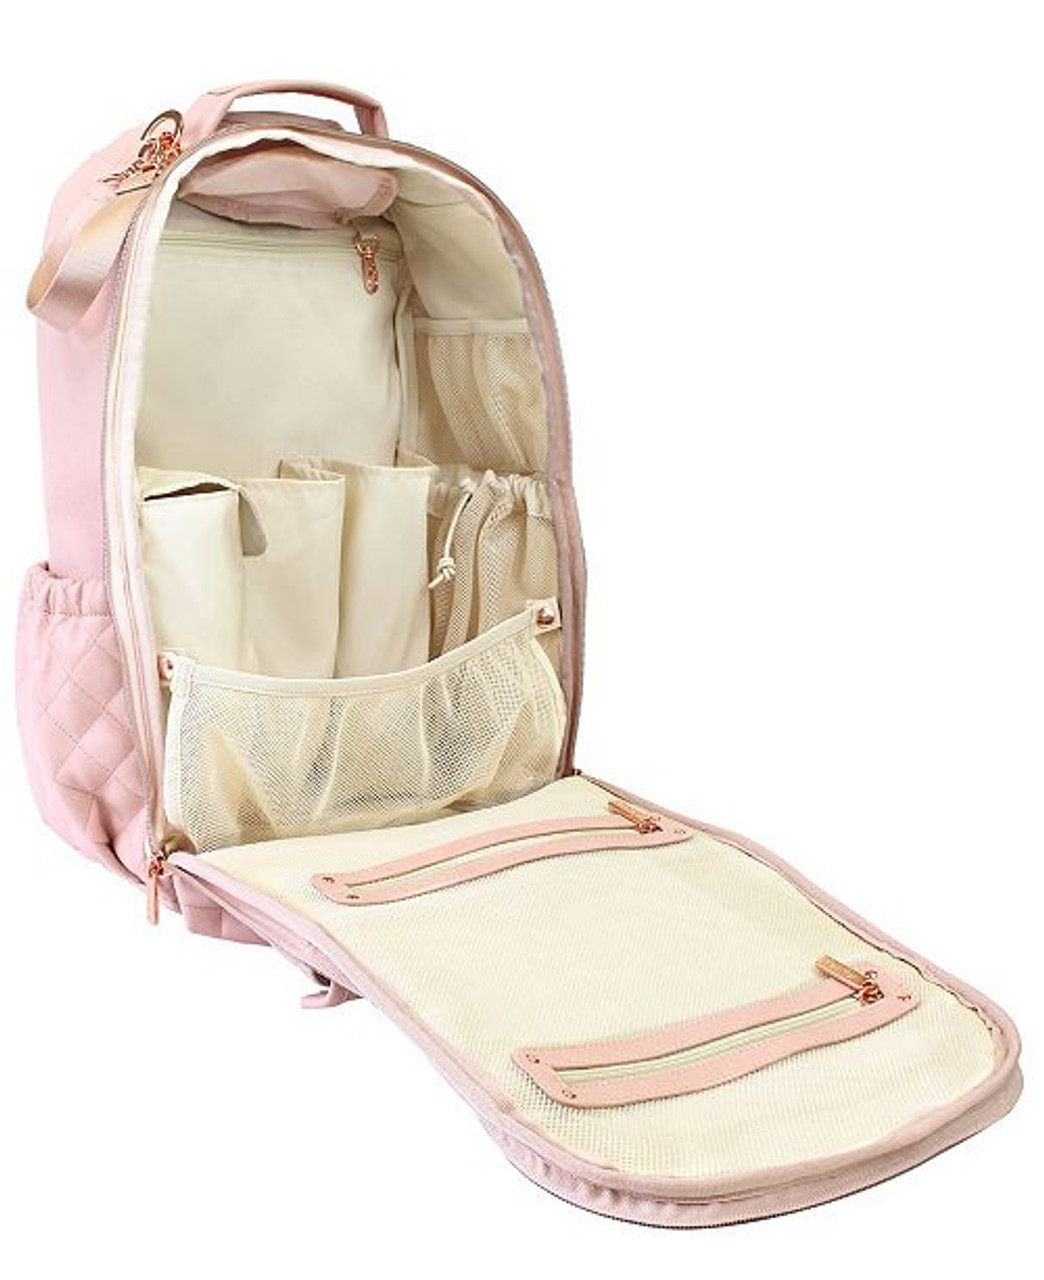 Blush Boss Backpack by Itzy Ritzy